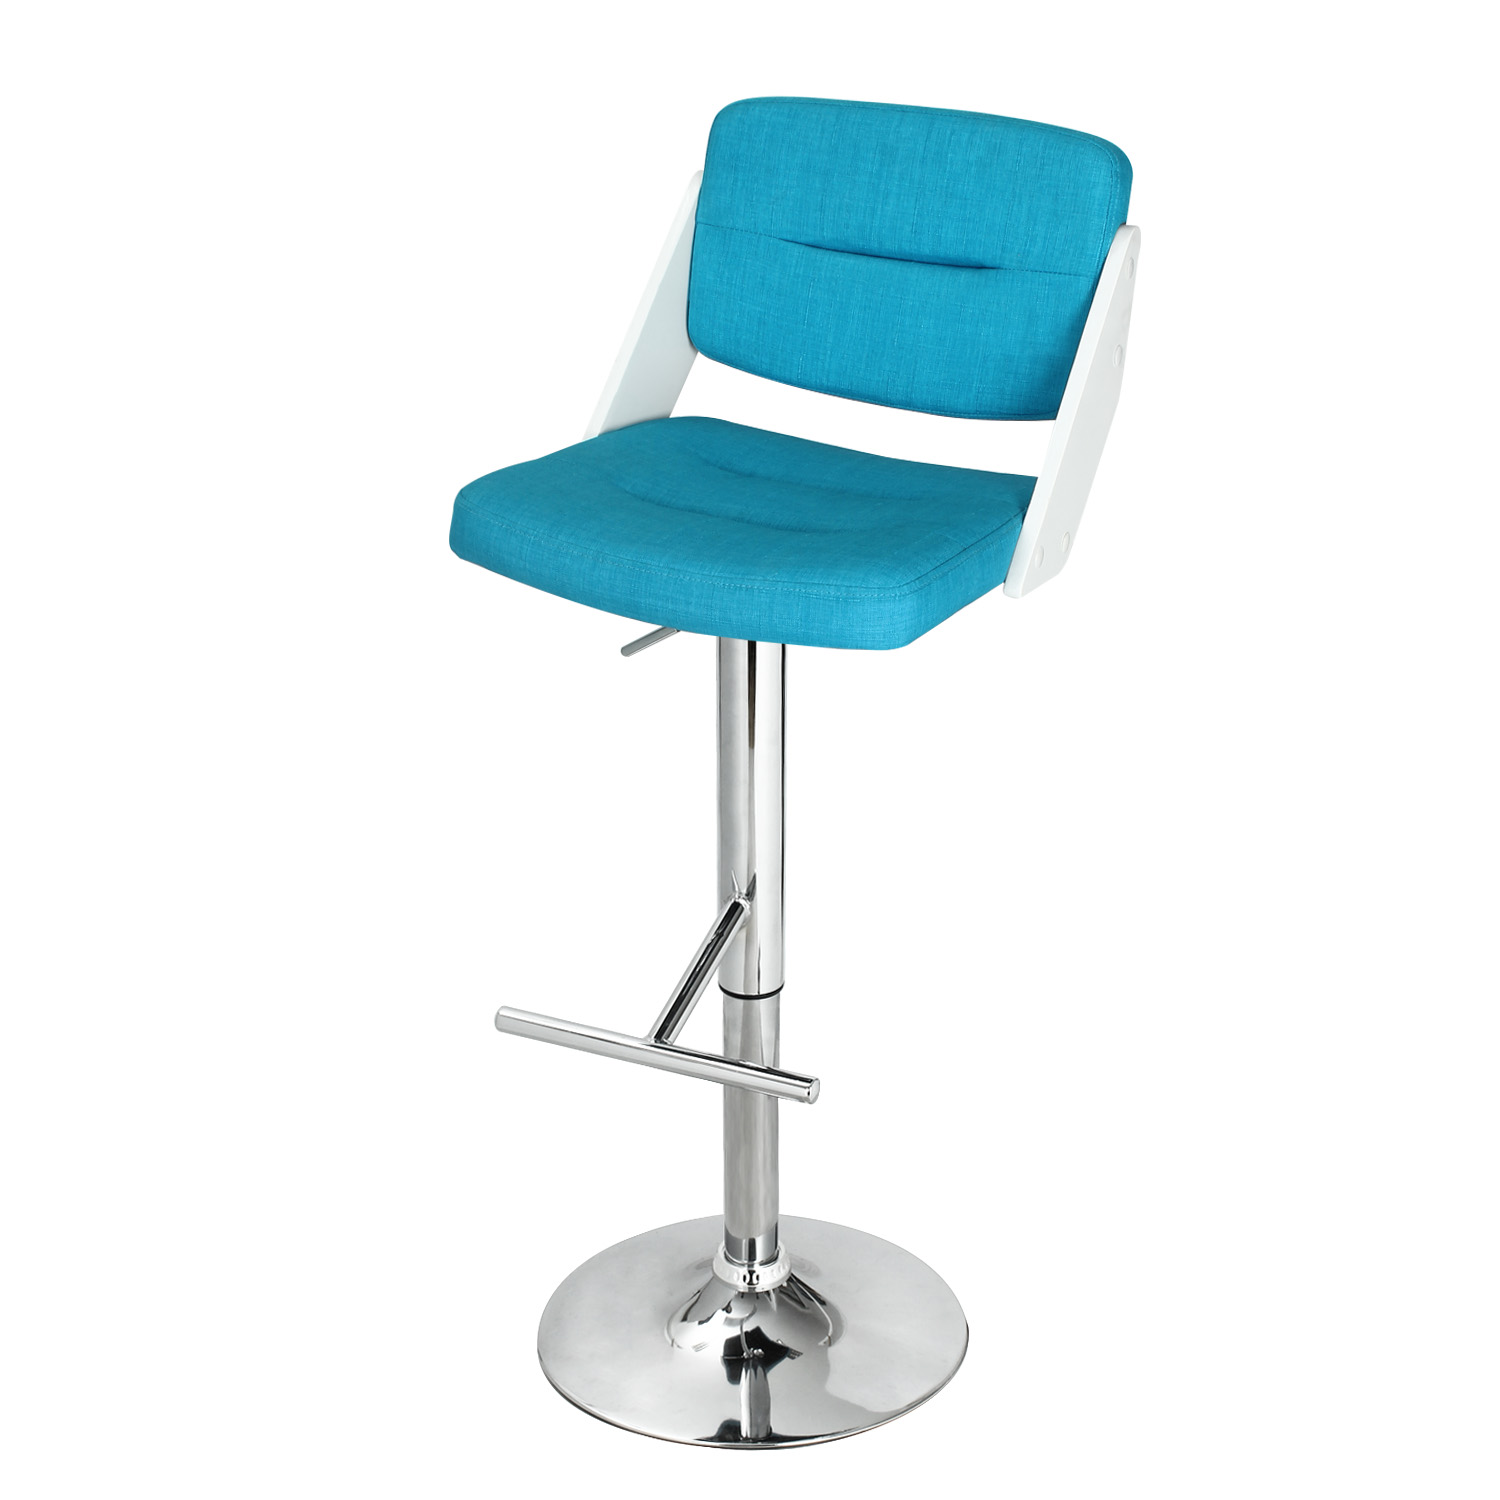 Wondrous Decenthome Blue Adjustable Height Bar Stool With Fabric Ch0263 Cjindustries Chair Design For Home Cjindustriesco